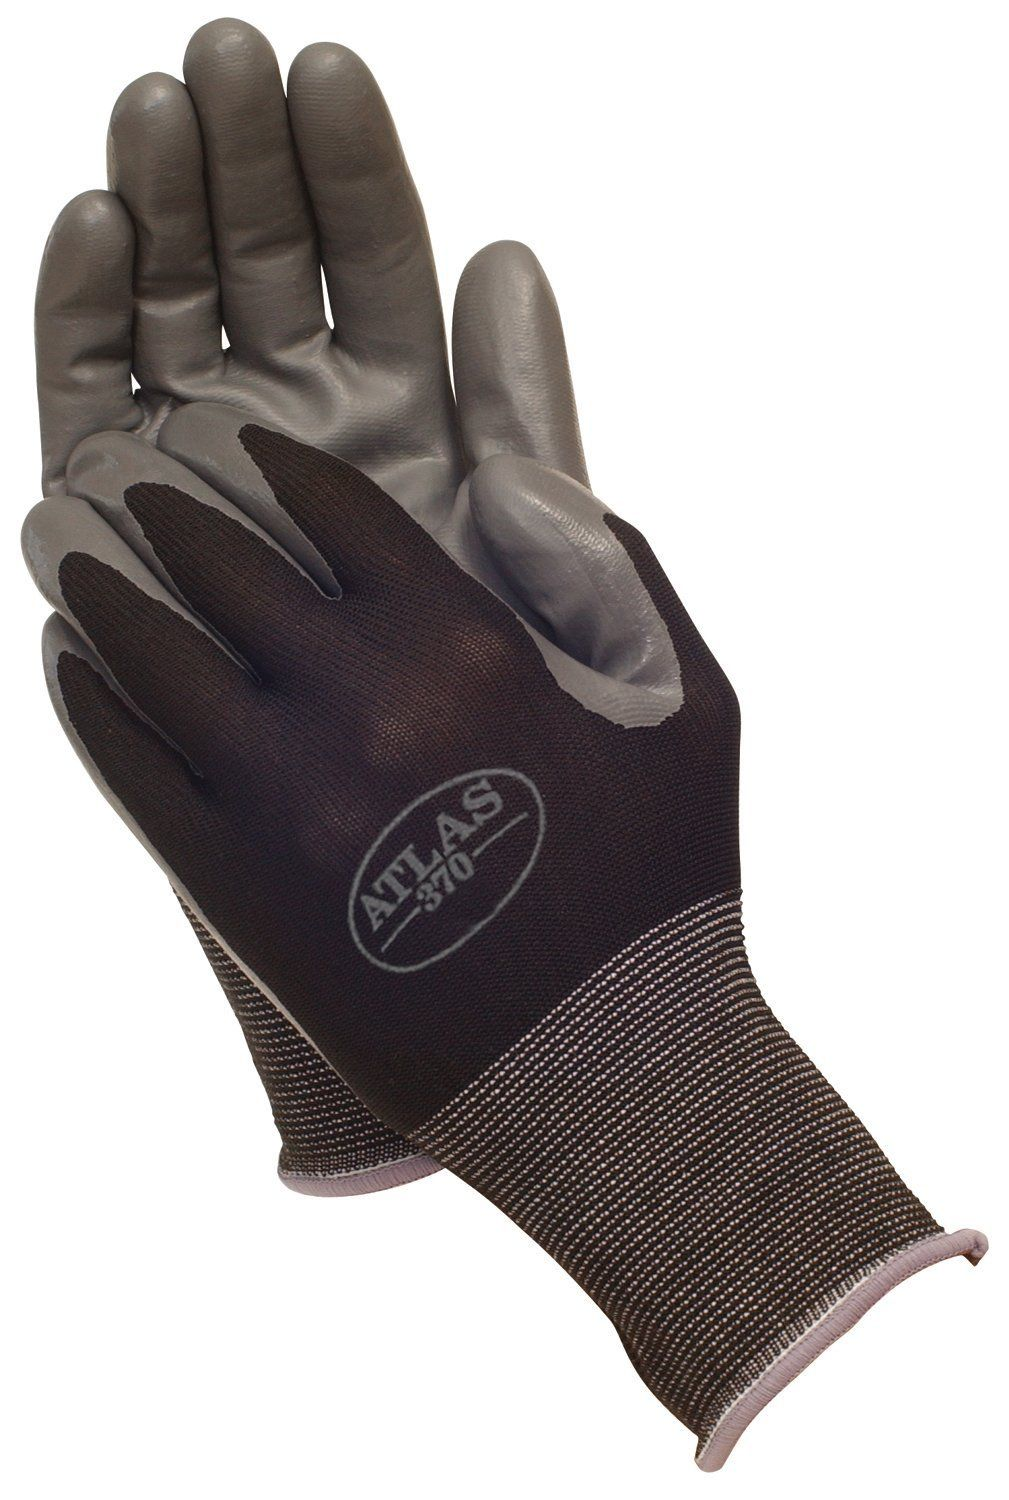 Bellingham Nitrile Tough Glove See this awesome image